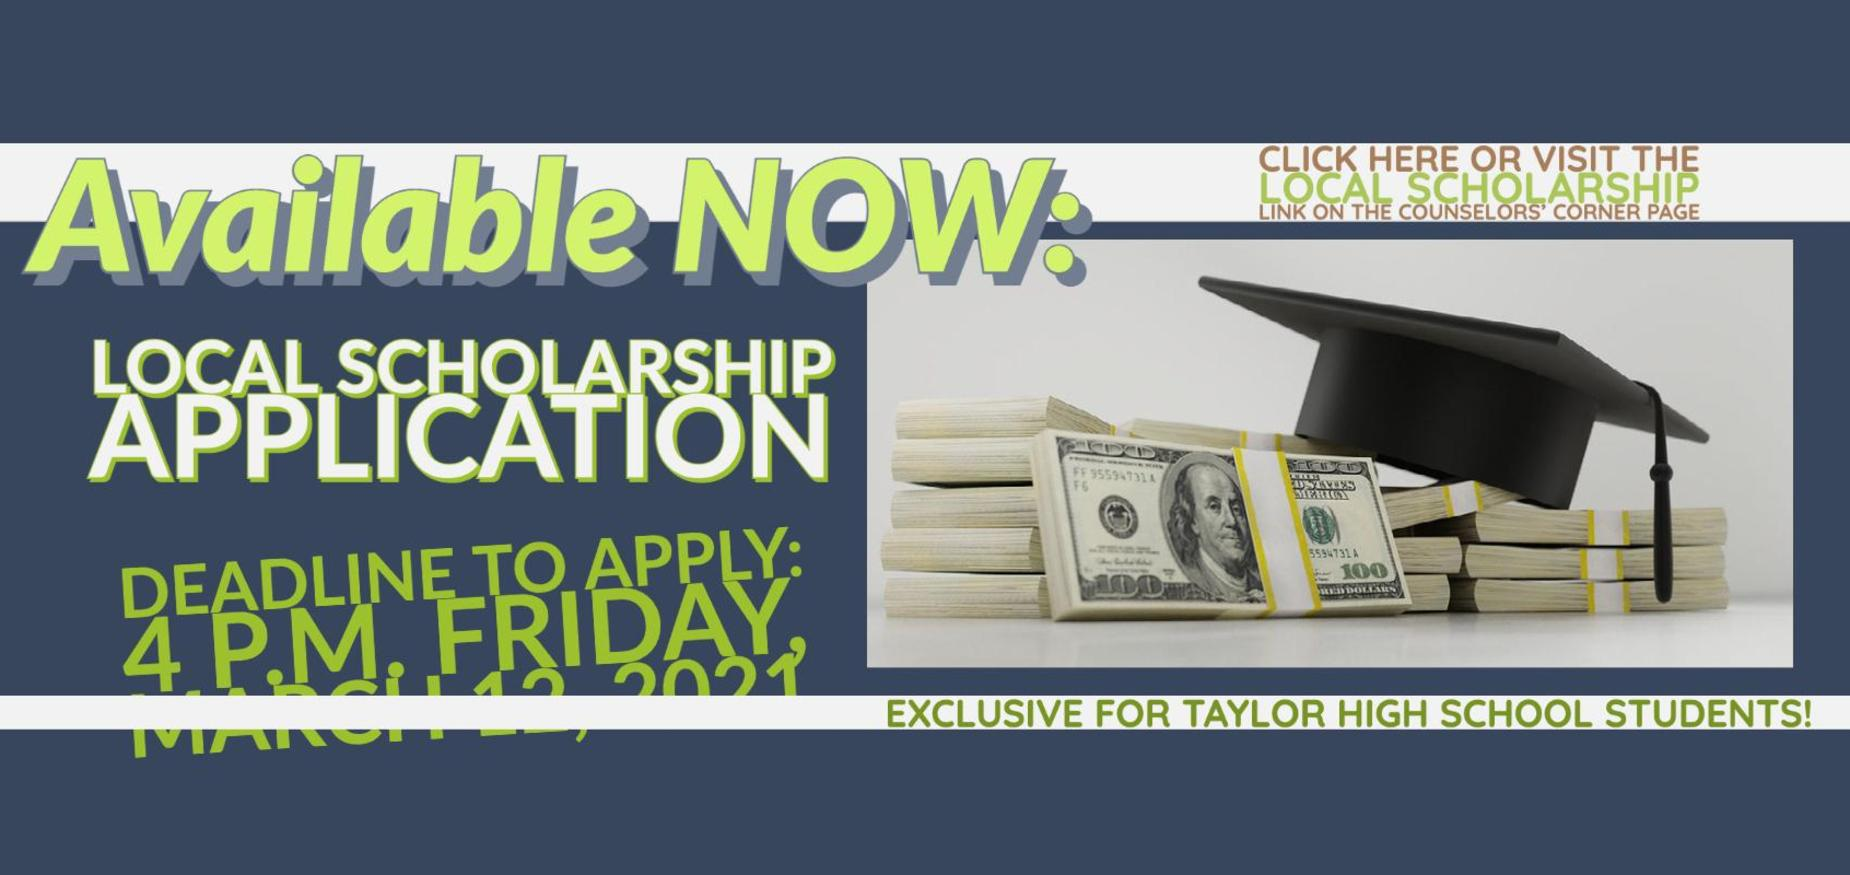 Local Scholarship Deadline Friday, March 12, 2021